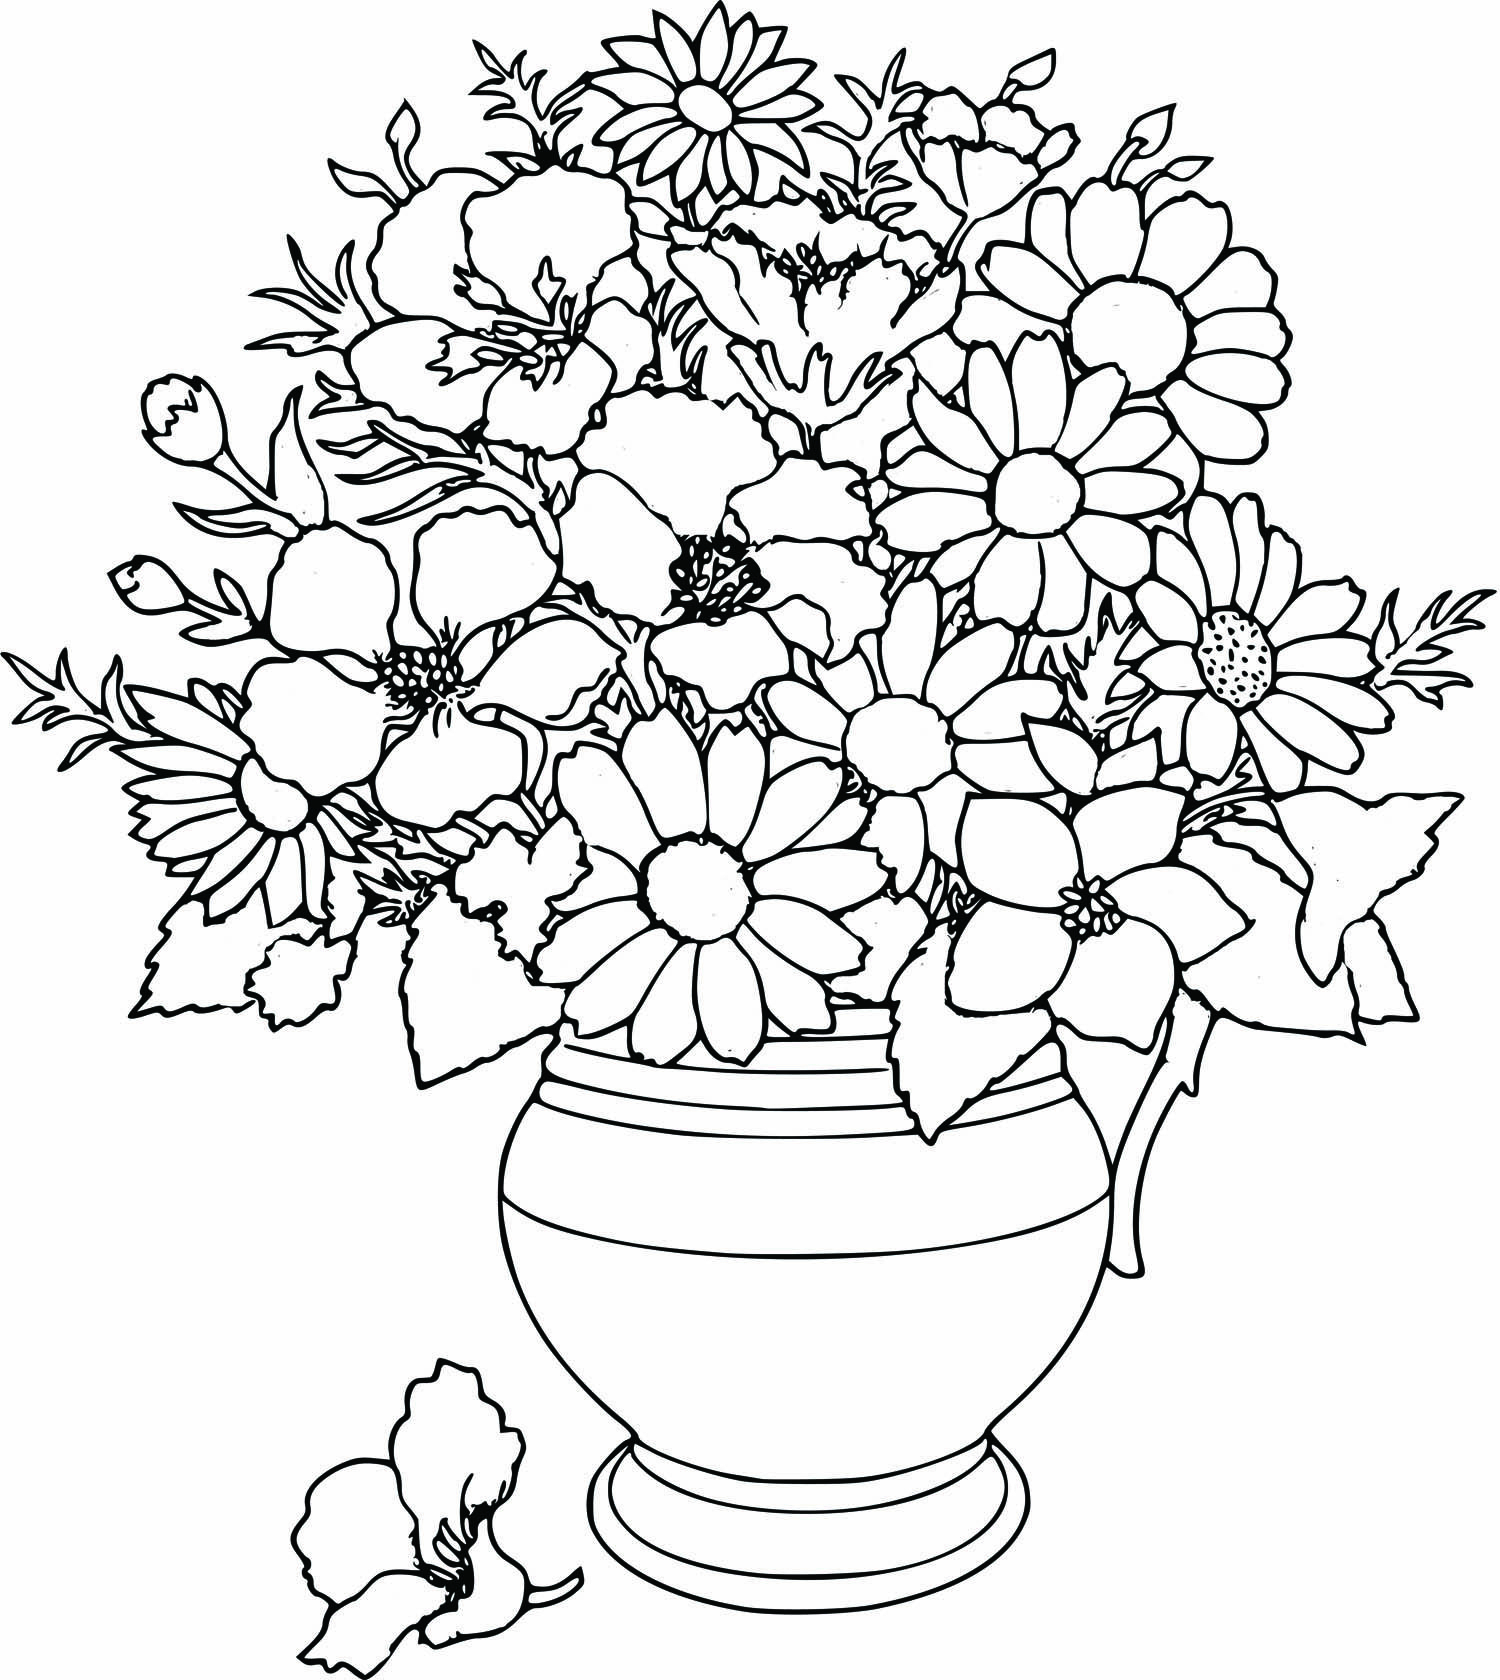 Coloring Pages On Pinterest Free Beautifull Flower Coloring Pages Pinterest Throughout For Girls